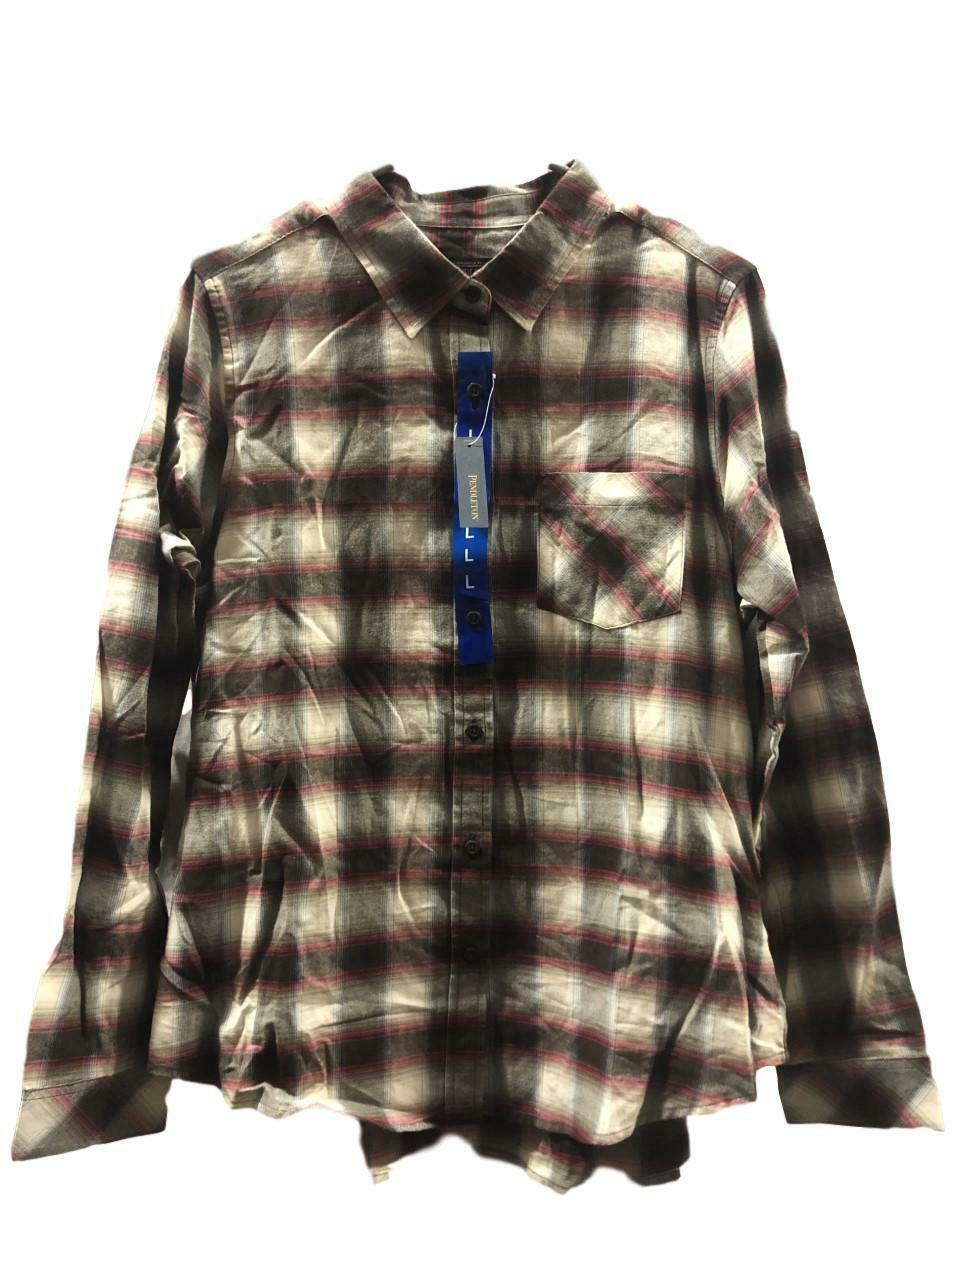 Womens Pendleton Plaid Button Up Long Sleeve Shirt. Large Casual Button-Down Shirts